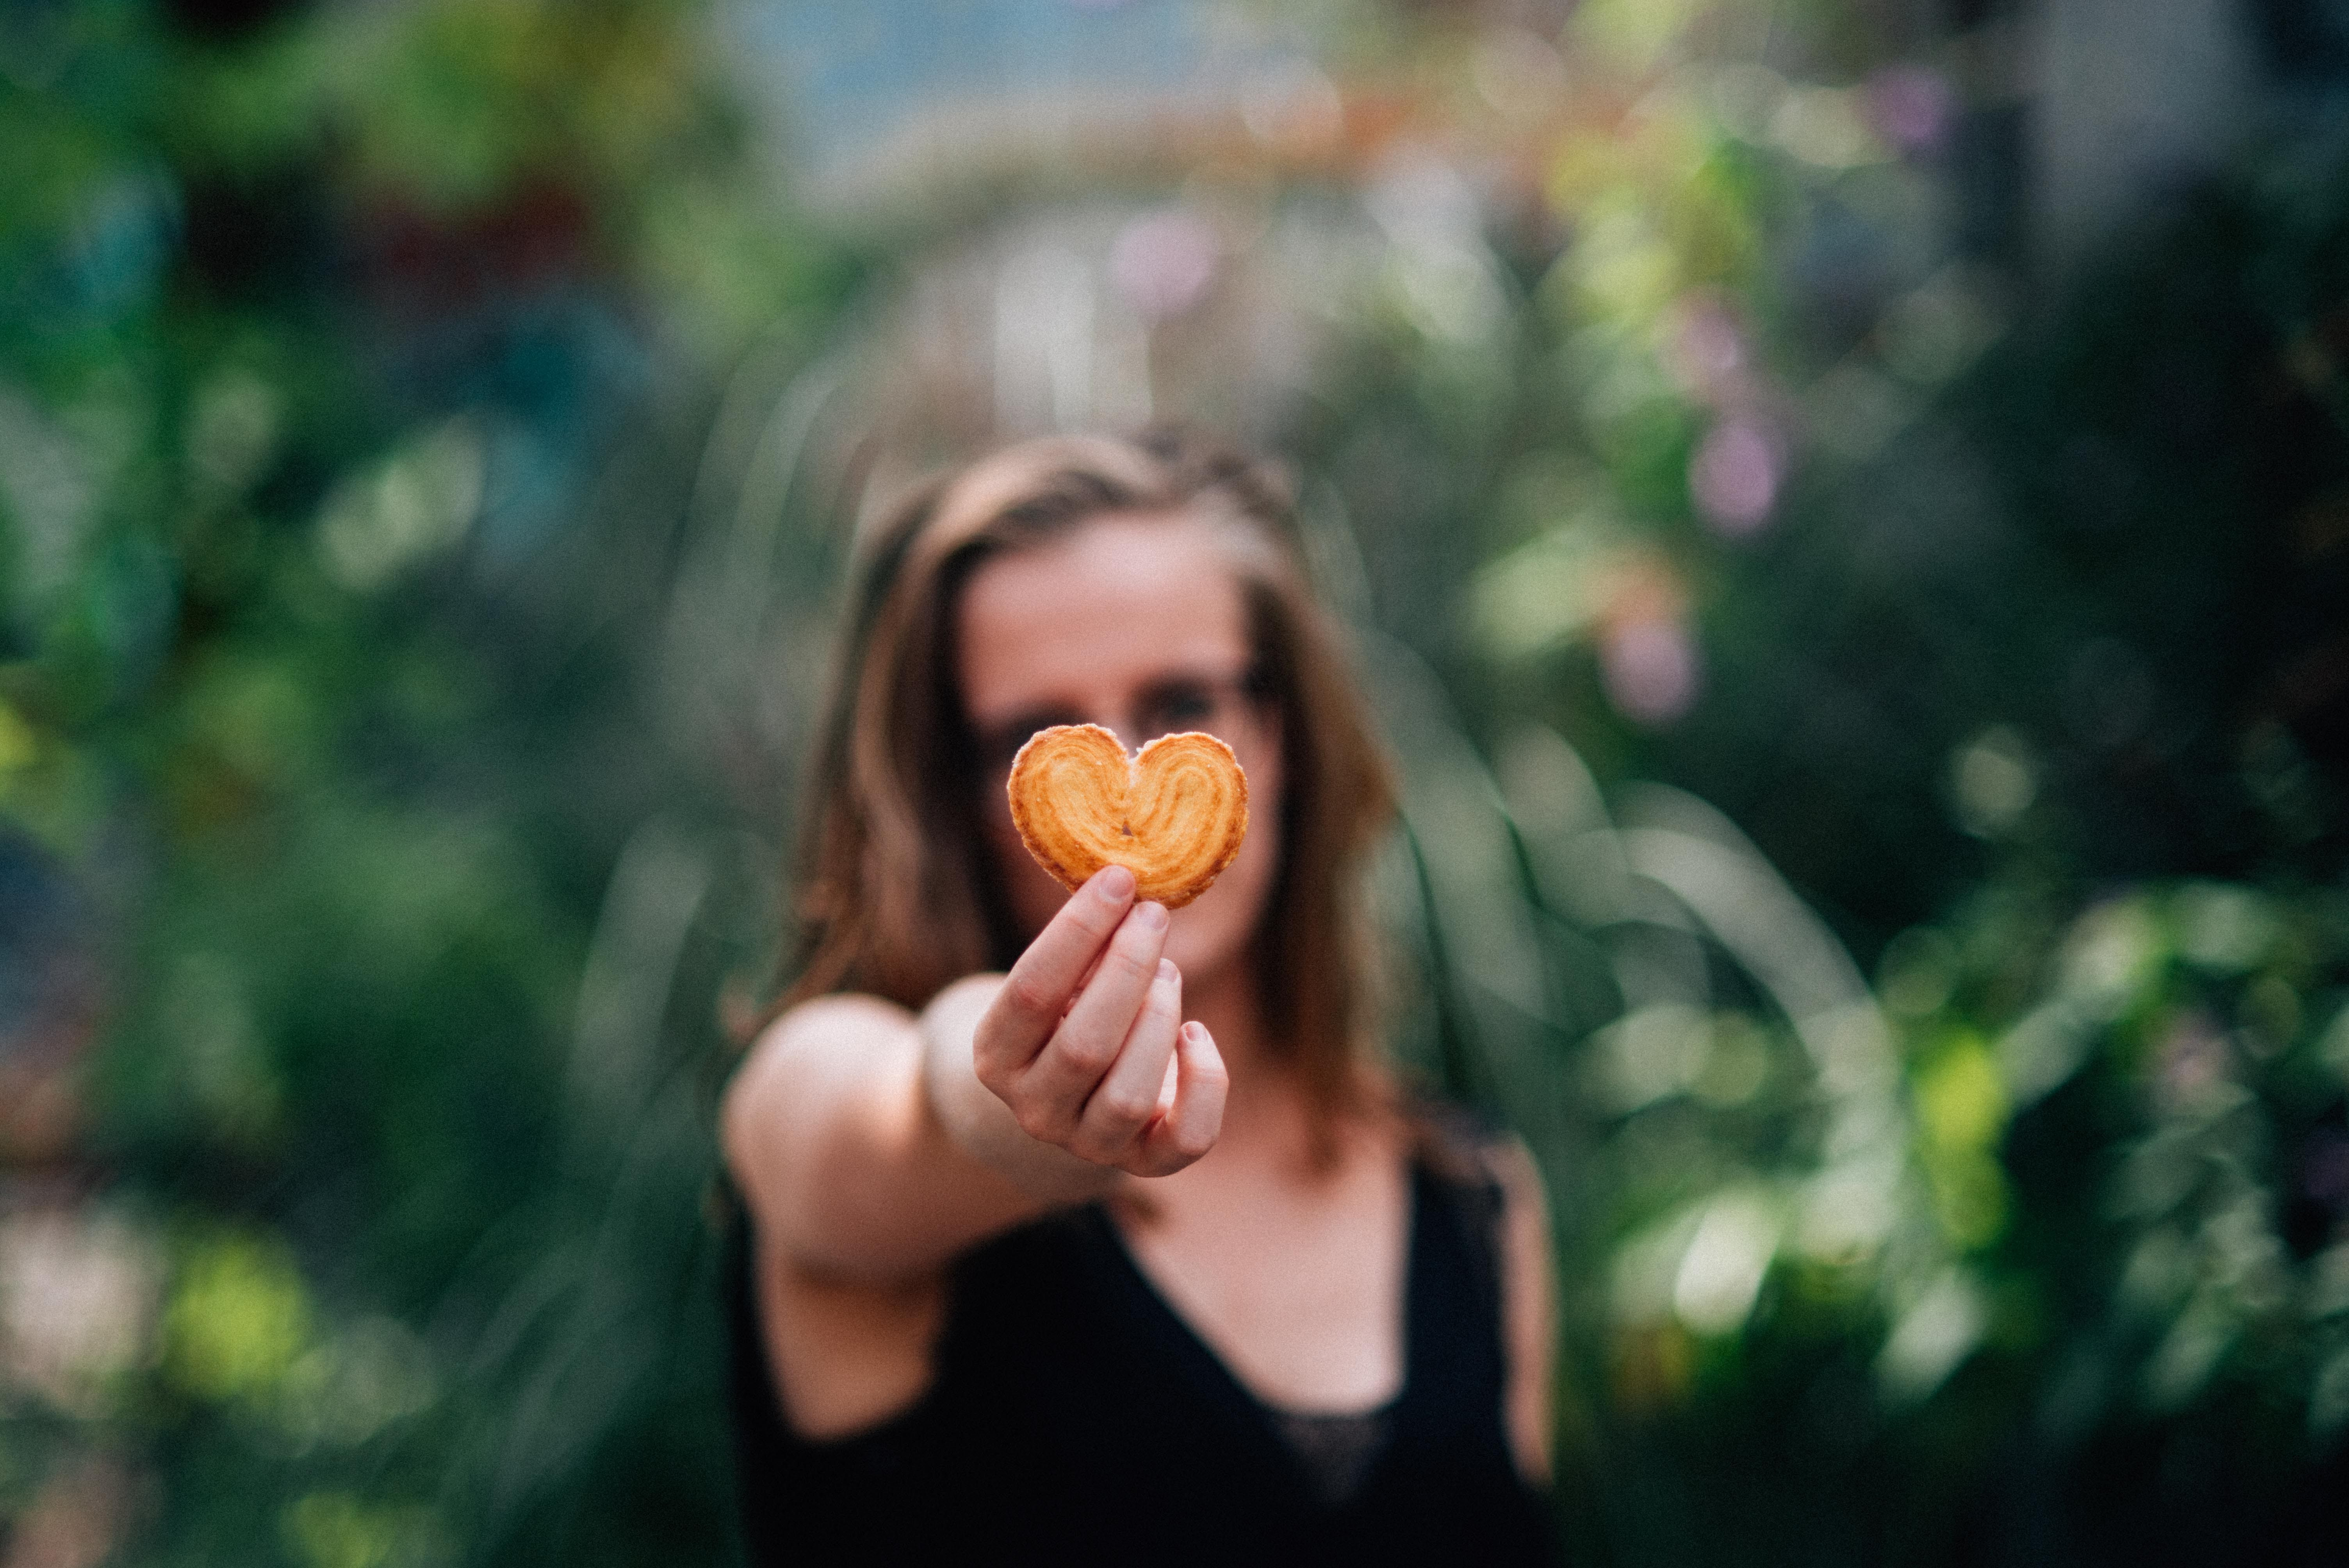 #human  #person  #confectionery #woman #in #black  woman in black top holding heart shaped cookie Amour céréalier